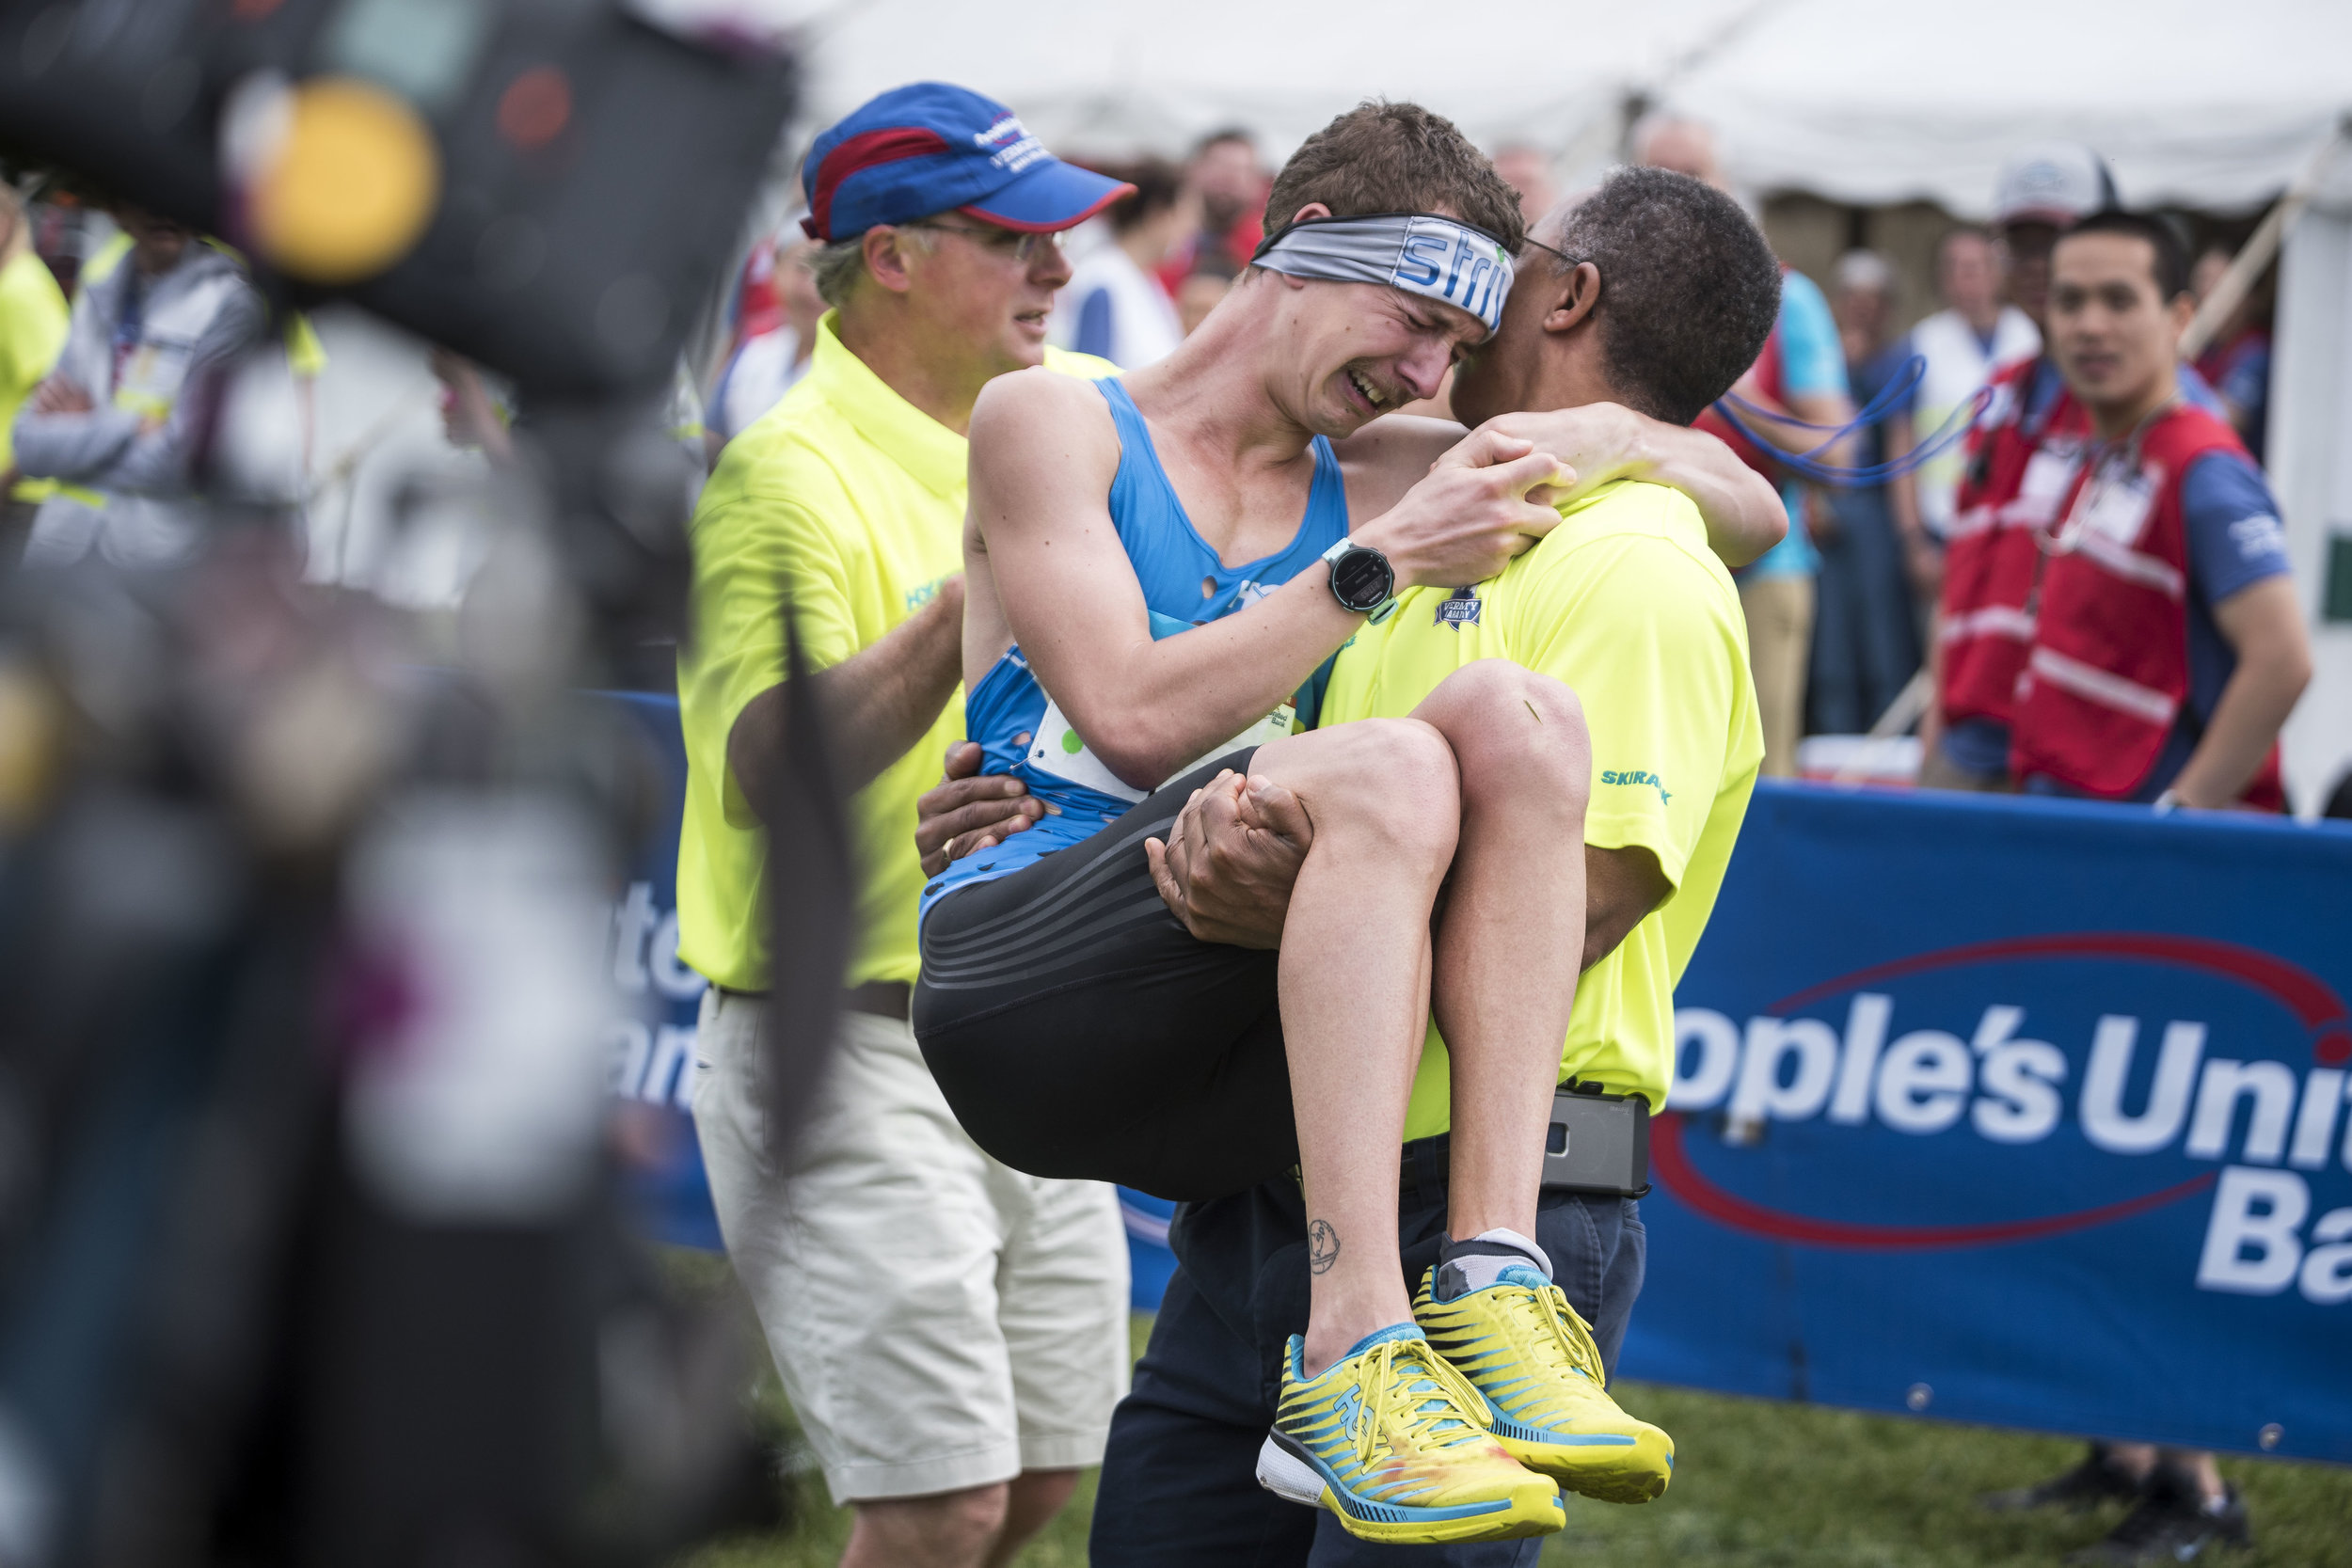 Tyler Andrews of Concord, MA finishes first (2:17:44) and is assisted by medical staff at the 30th People's United Bank Vermont City Marathon in Burlington on May 27th, 2018.